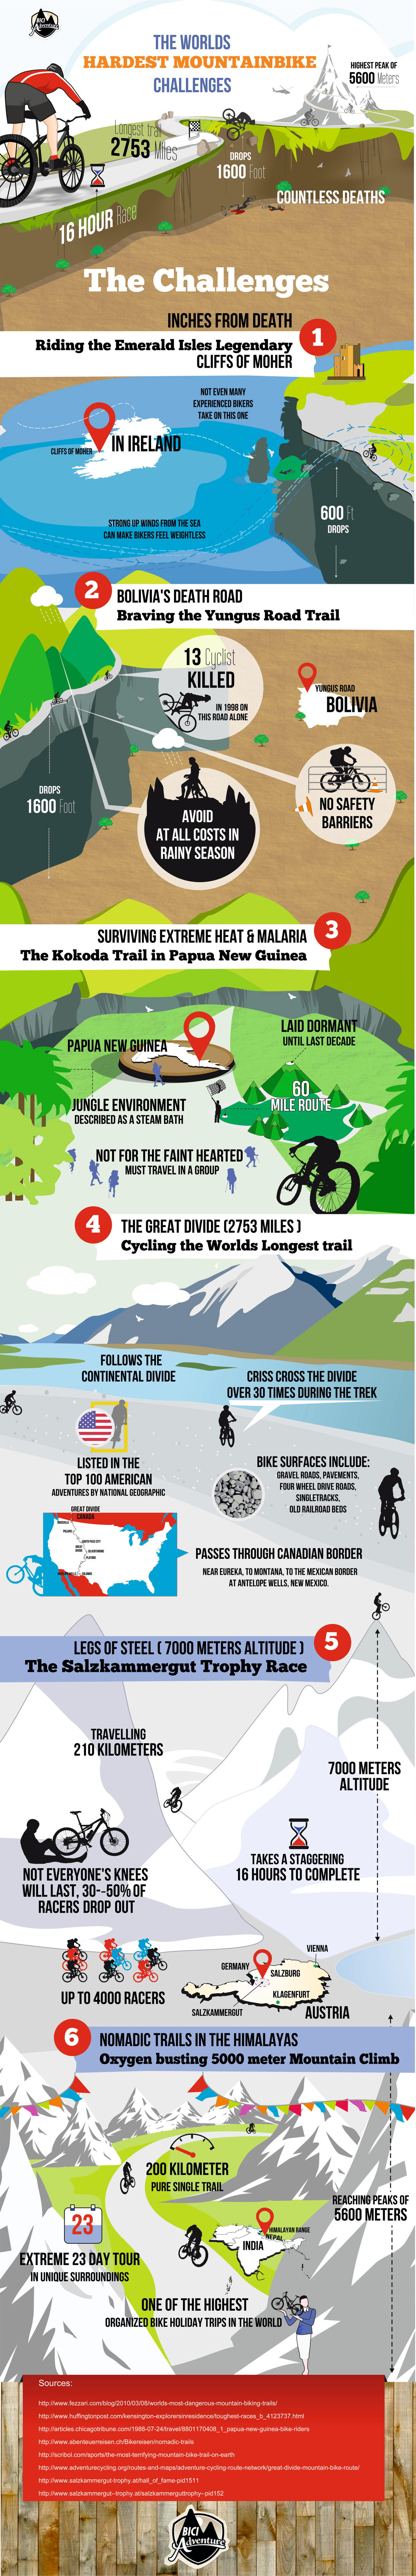 the-worlds-hardest-mountainbike-challenges-infographic